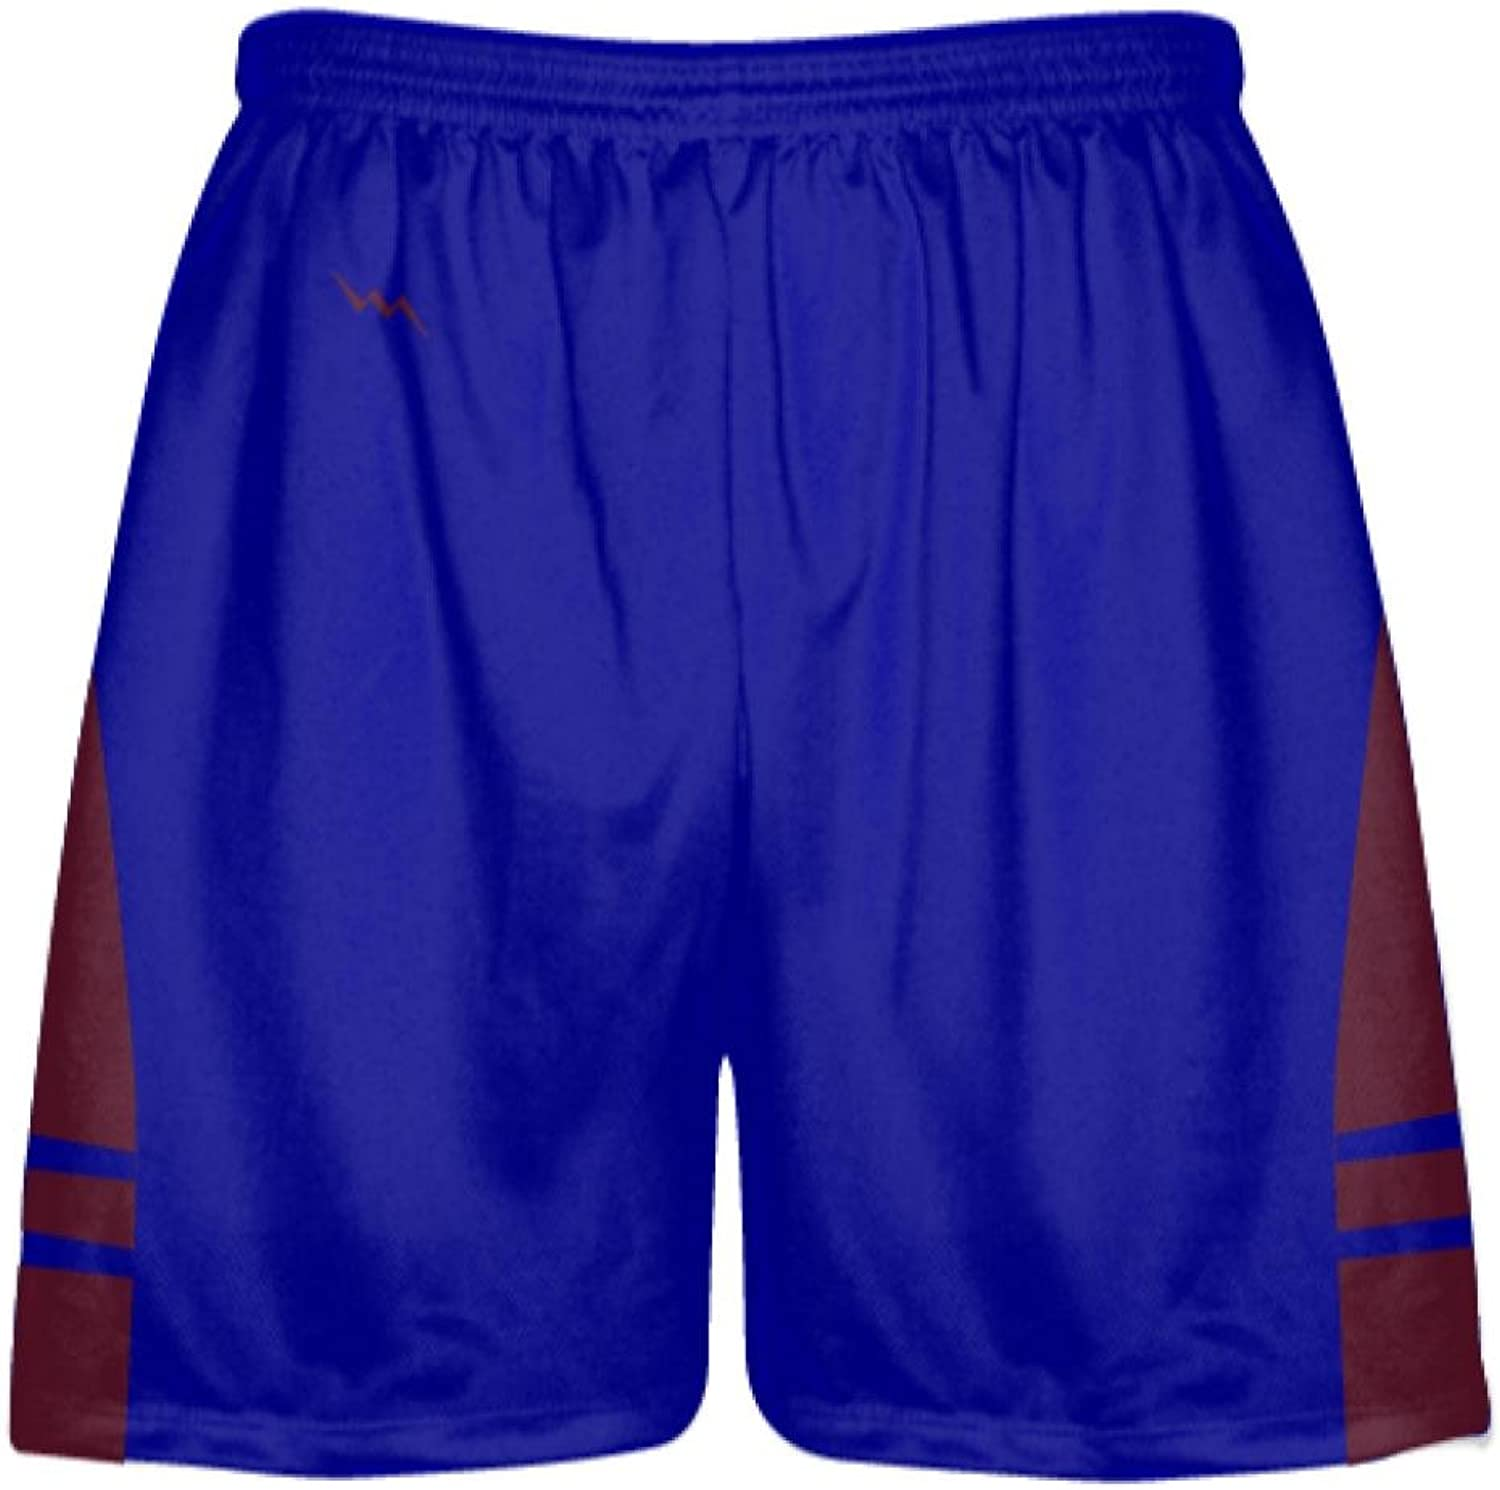 LightningWear Youth Royal blueee Maroon Lacrosse Shorts OG  Lax Shorts Mens Boys Youth, Royal blueee